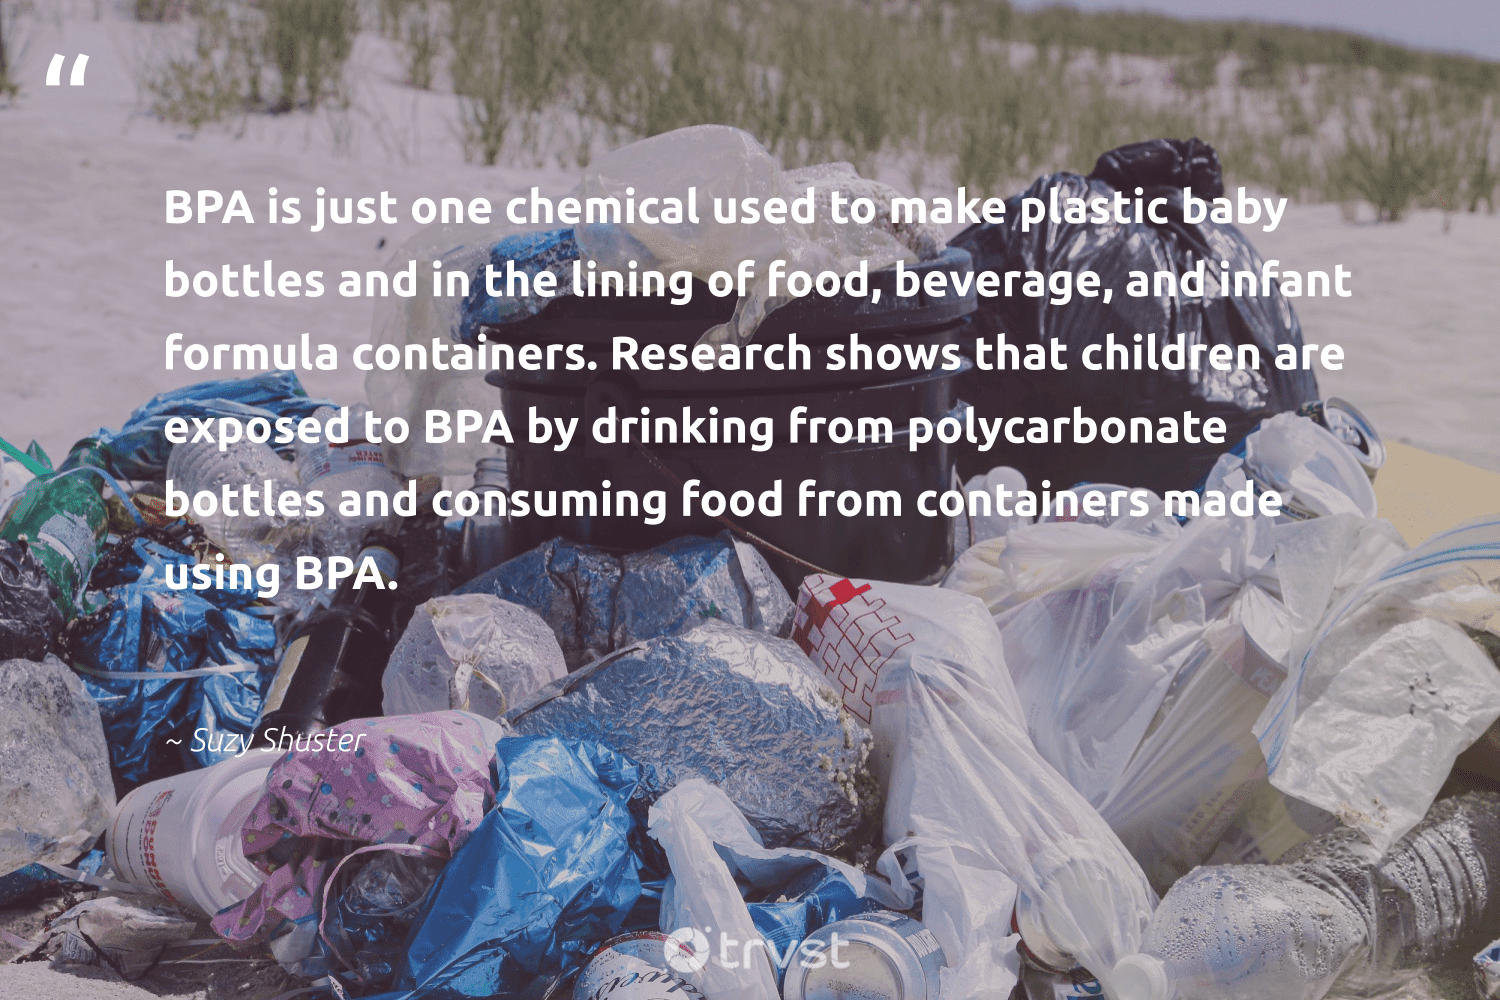 """""""BPA is just one chemical used to make plastic baby bottles and in the lining of food, beverage, and infant formula containers. Research shows that children are exposed to BPA by drinking from polycarbonate bottles and consuming food from containers made using BPA.""""  - Suzy Shuster #trvst #quotes #plasticwaste #plastic #research #food #children #saynotoplastic #wasteless #sustainability #thinkgreen #plasticfreeliving"""